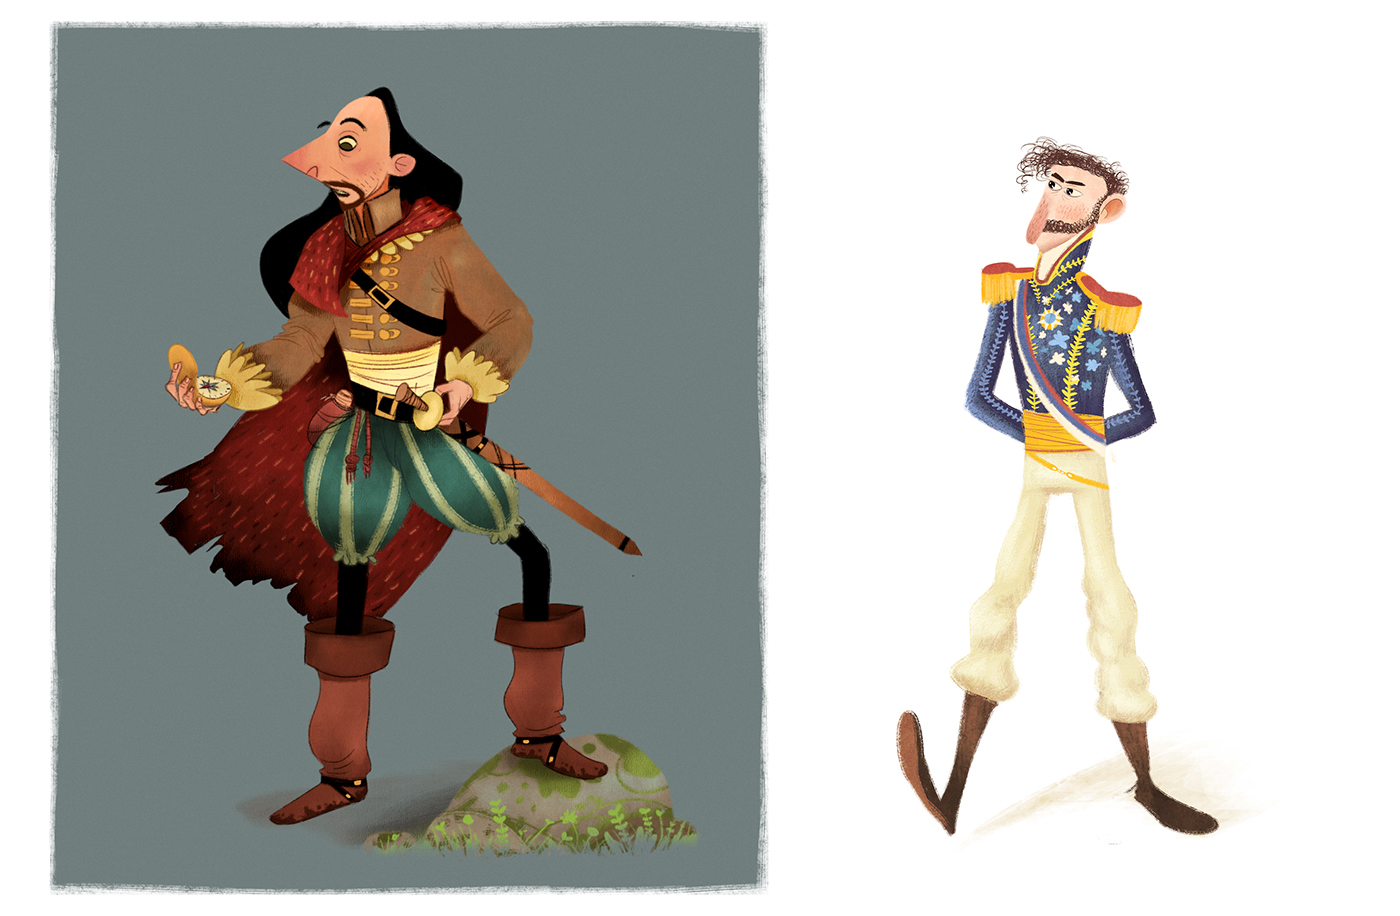 Character Design Behance : Character design on behance